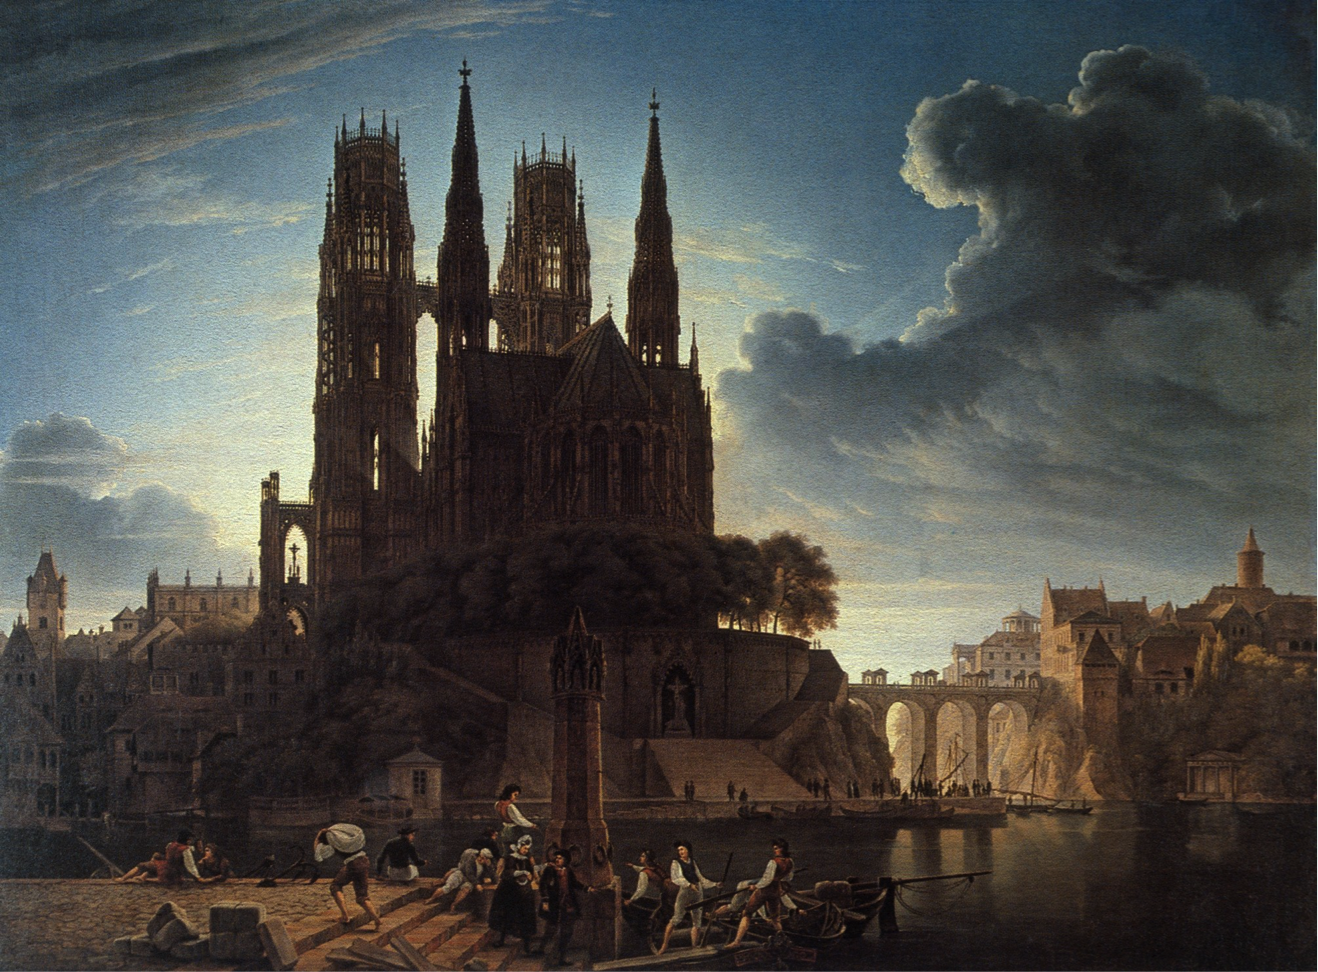 Cathedral Towering Over A Town By Karl Friedrich Schinkel 1813 Alte Nationalgalerie Kathedrale Kunstrichtung